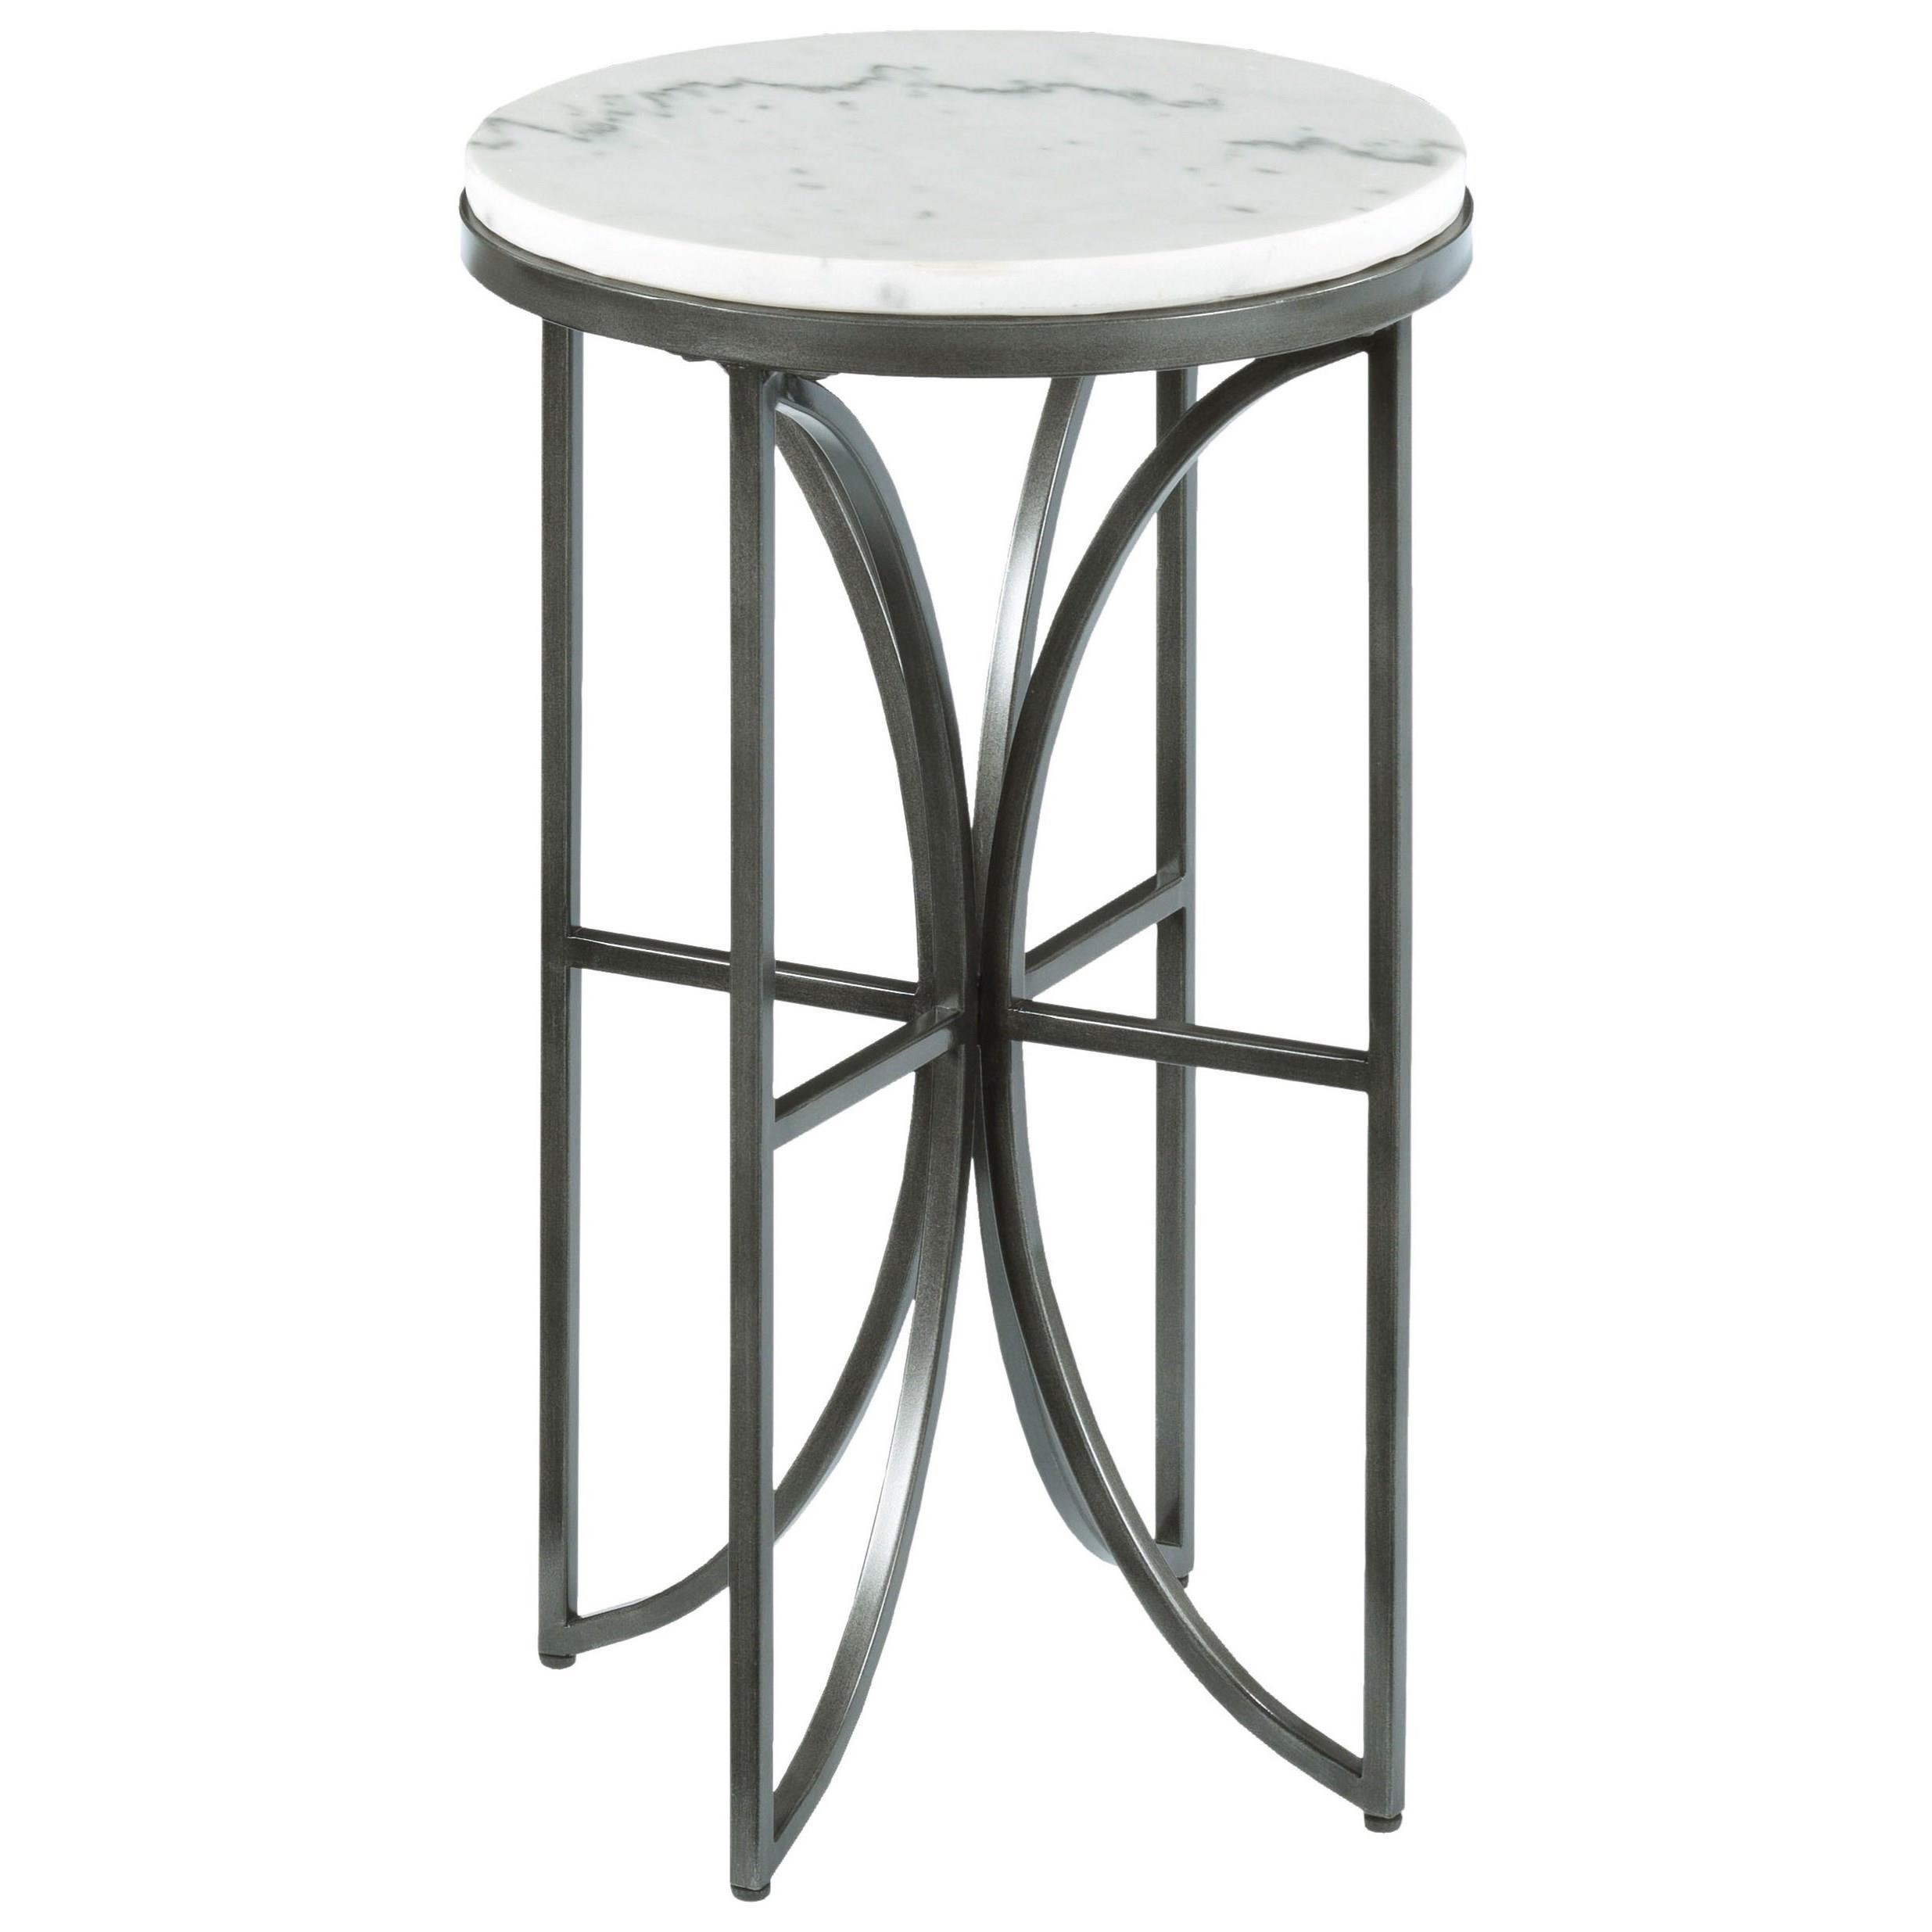 Small Round Accent Table With Marble Top